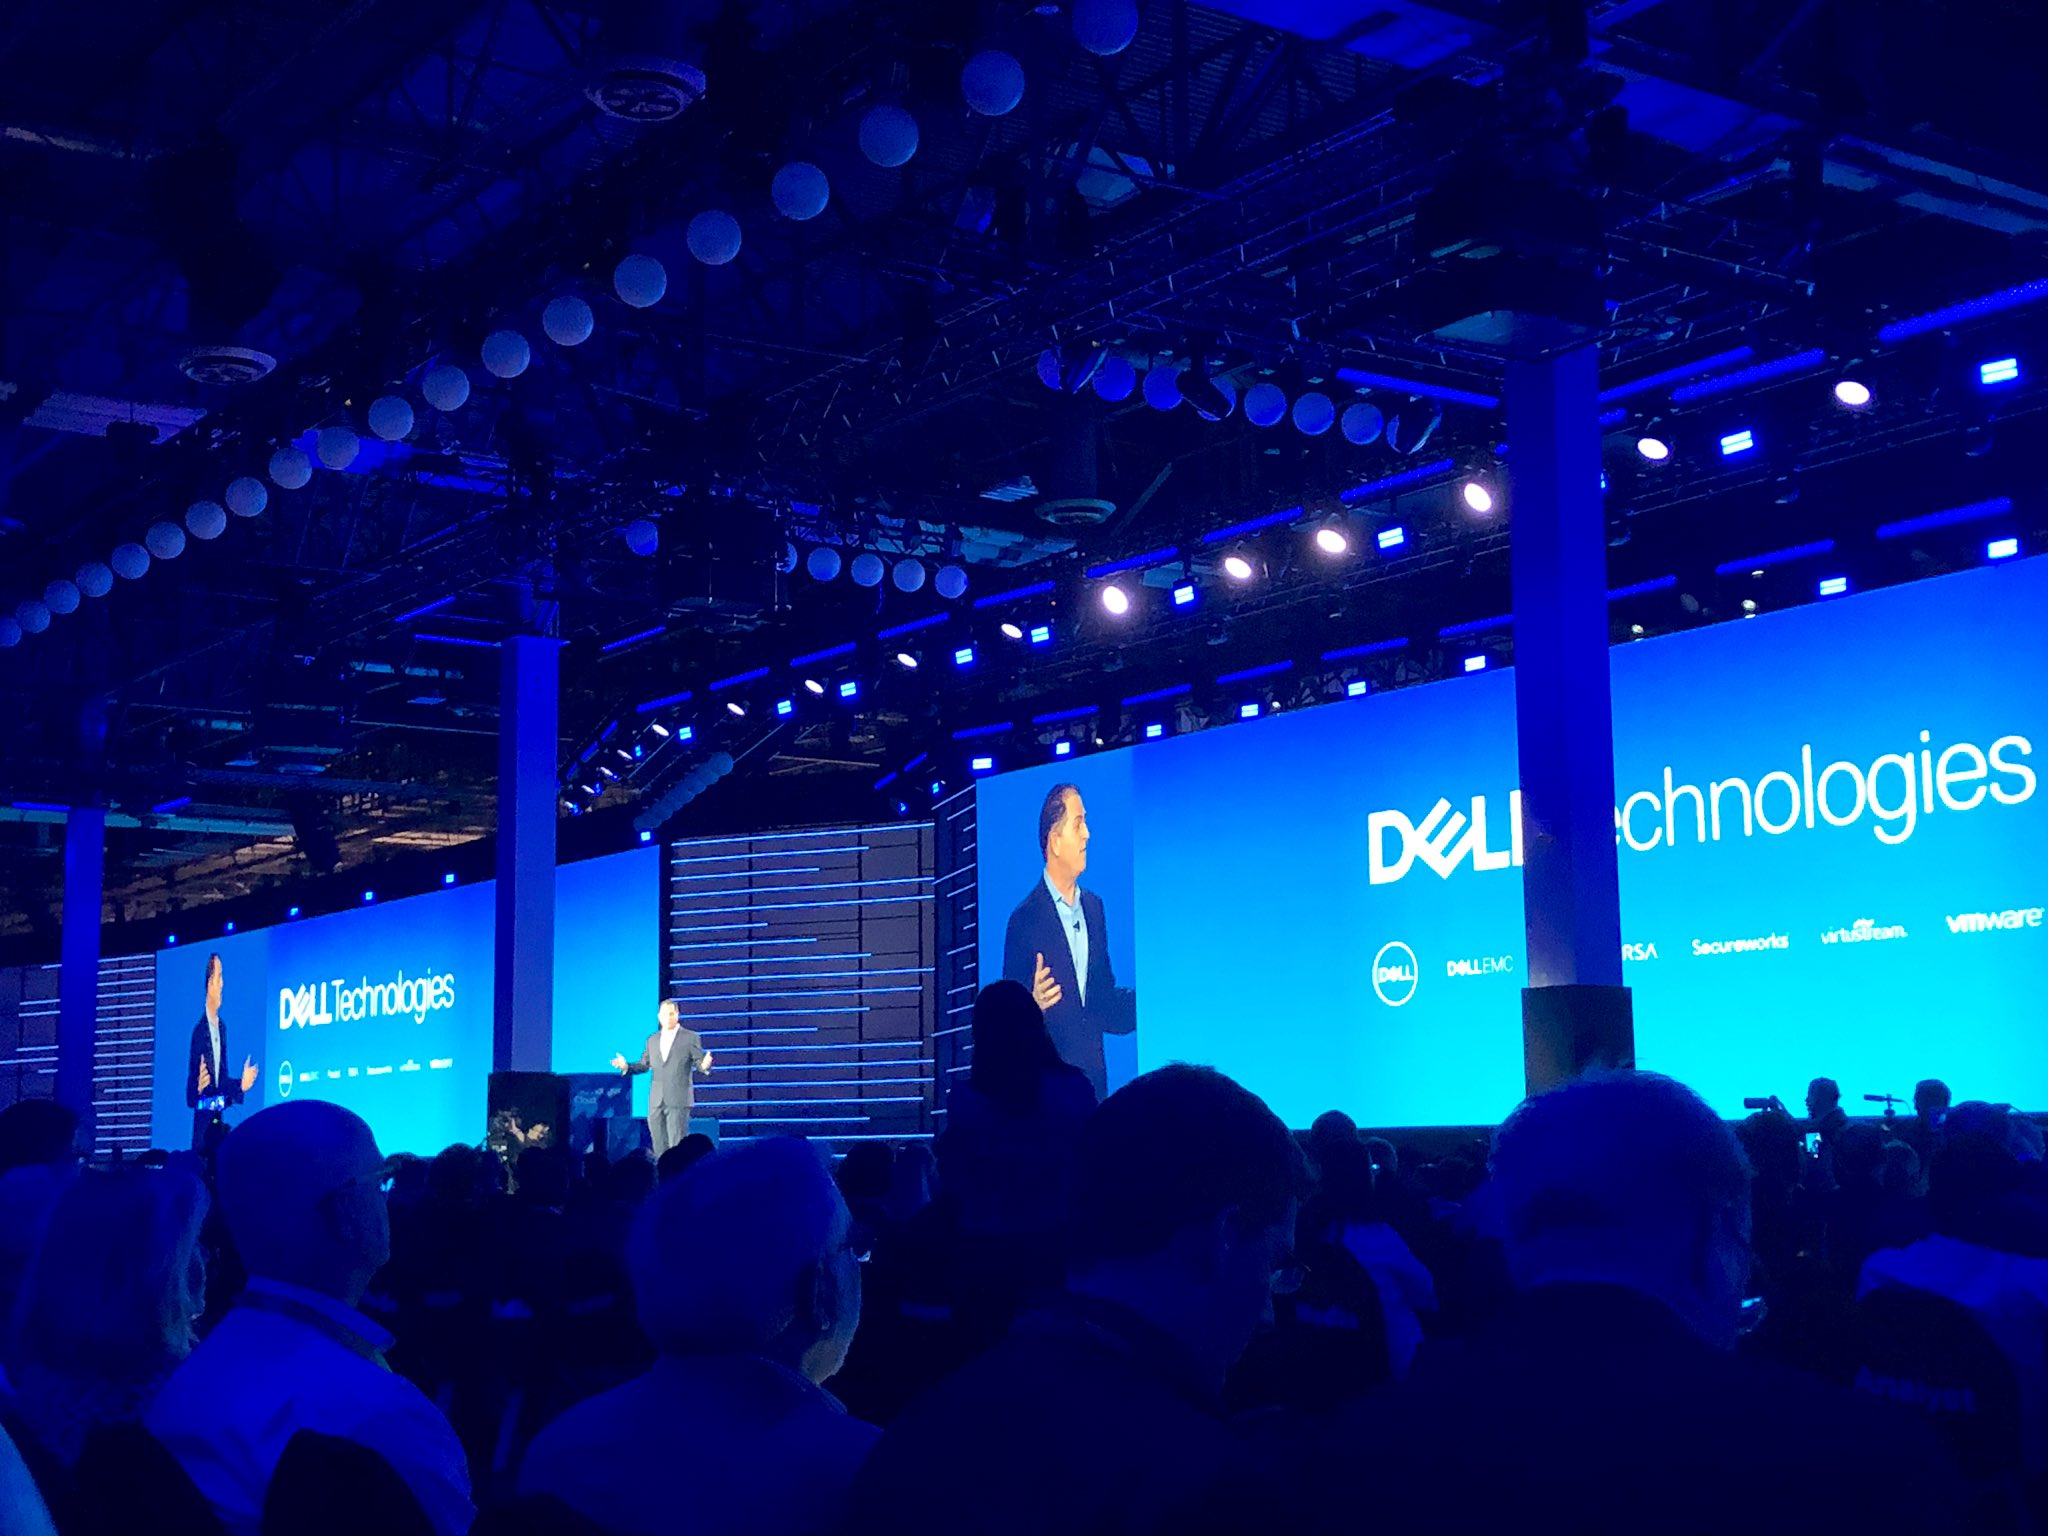 In a product blitz, Dell pushes edge, cloud, AI and